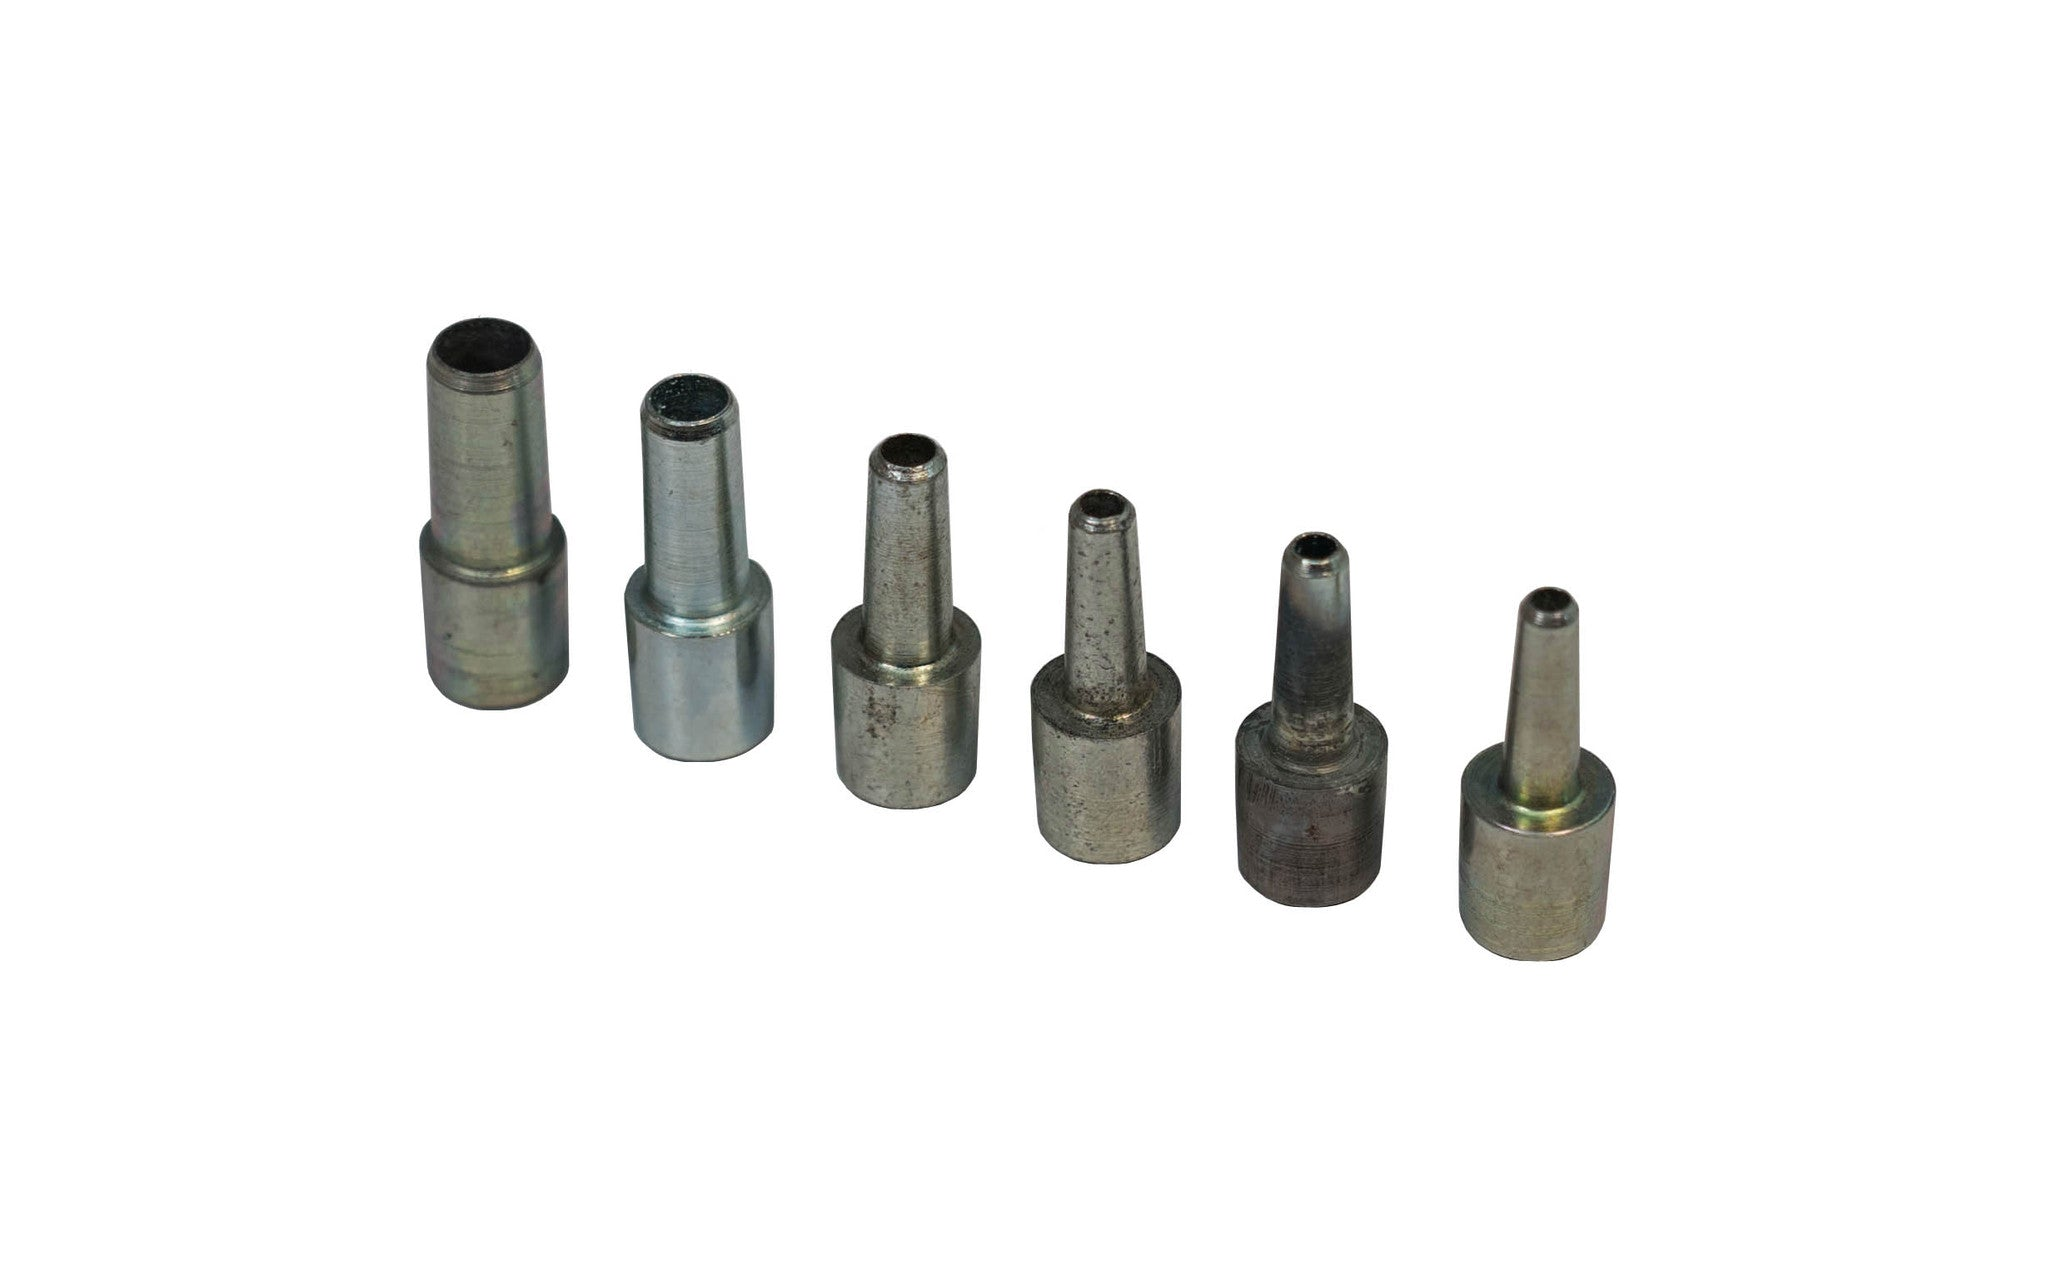 Replacement Punches for Maun Revolving Hole Punch Plier